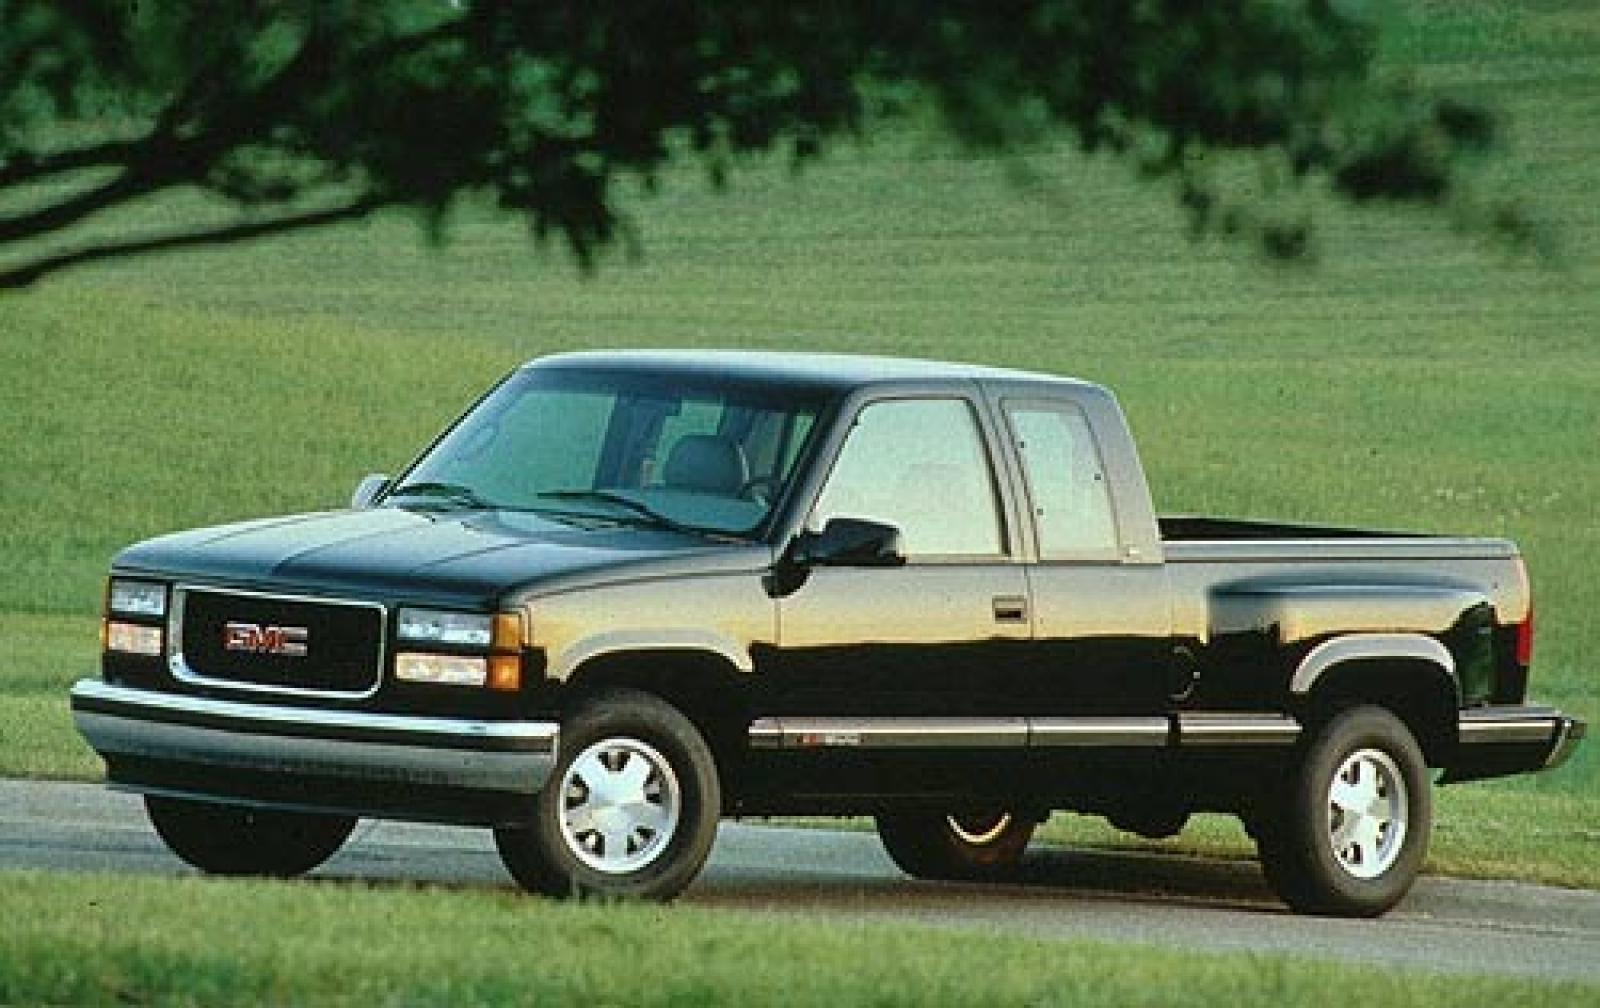 1997 gmc sierra 1500 information and photos zombiedrive. Black Bedroom Furniture Sets. Home Design Ideas